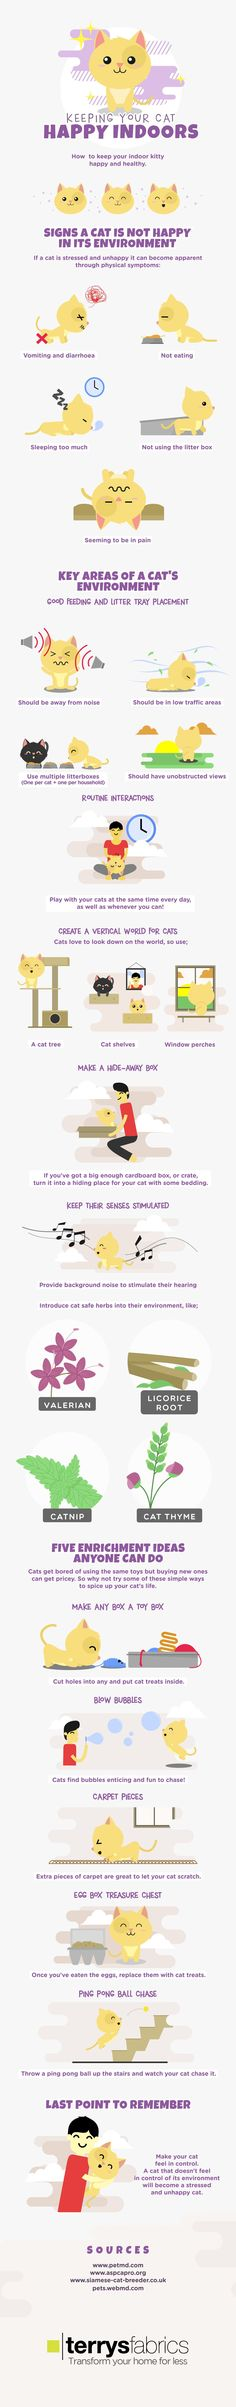 Many cats love to stay indoors and are never happier than when padding around the house. Yet sometimes your cat may become less content, which can be distressing both for you and your pet. The following infographic from Terrys Fabrics looks at how to keep your cat happy indoors.